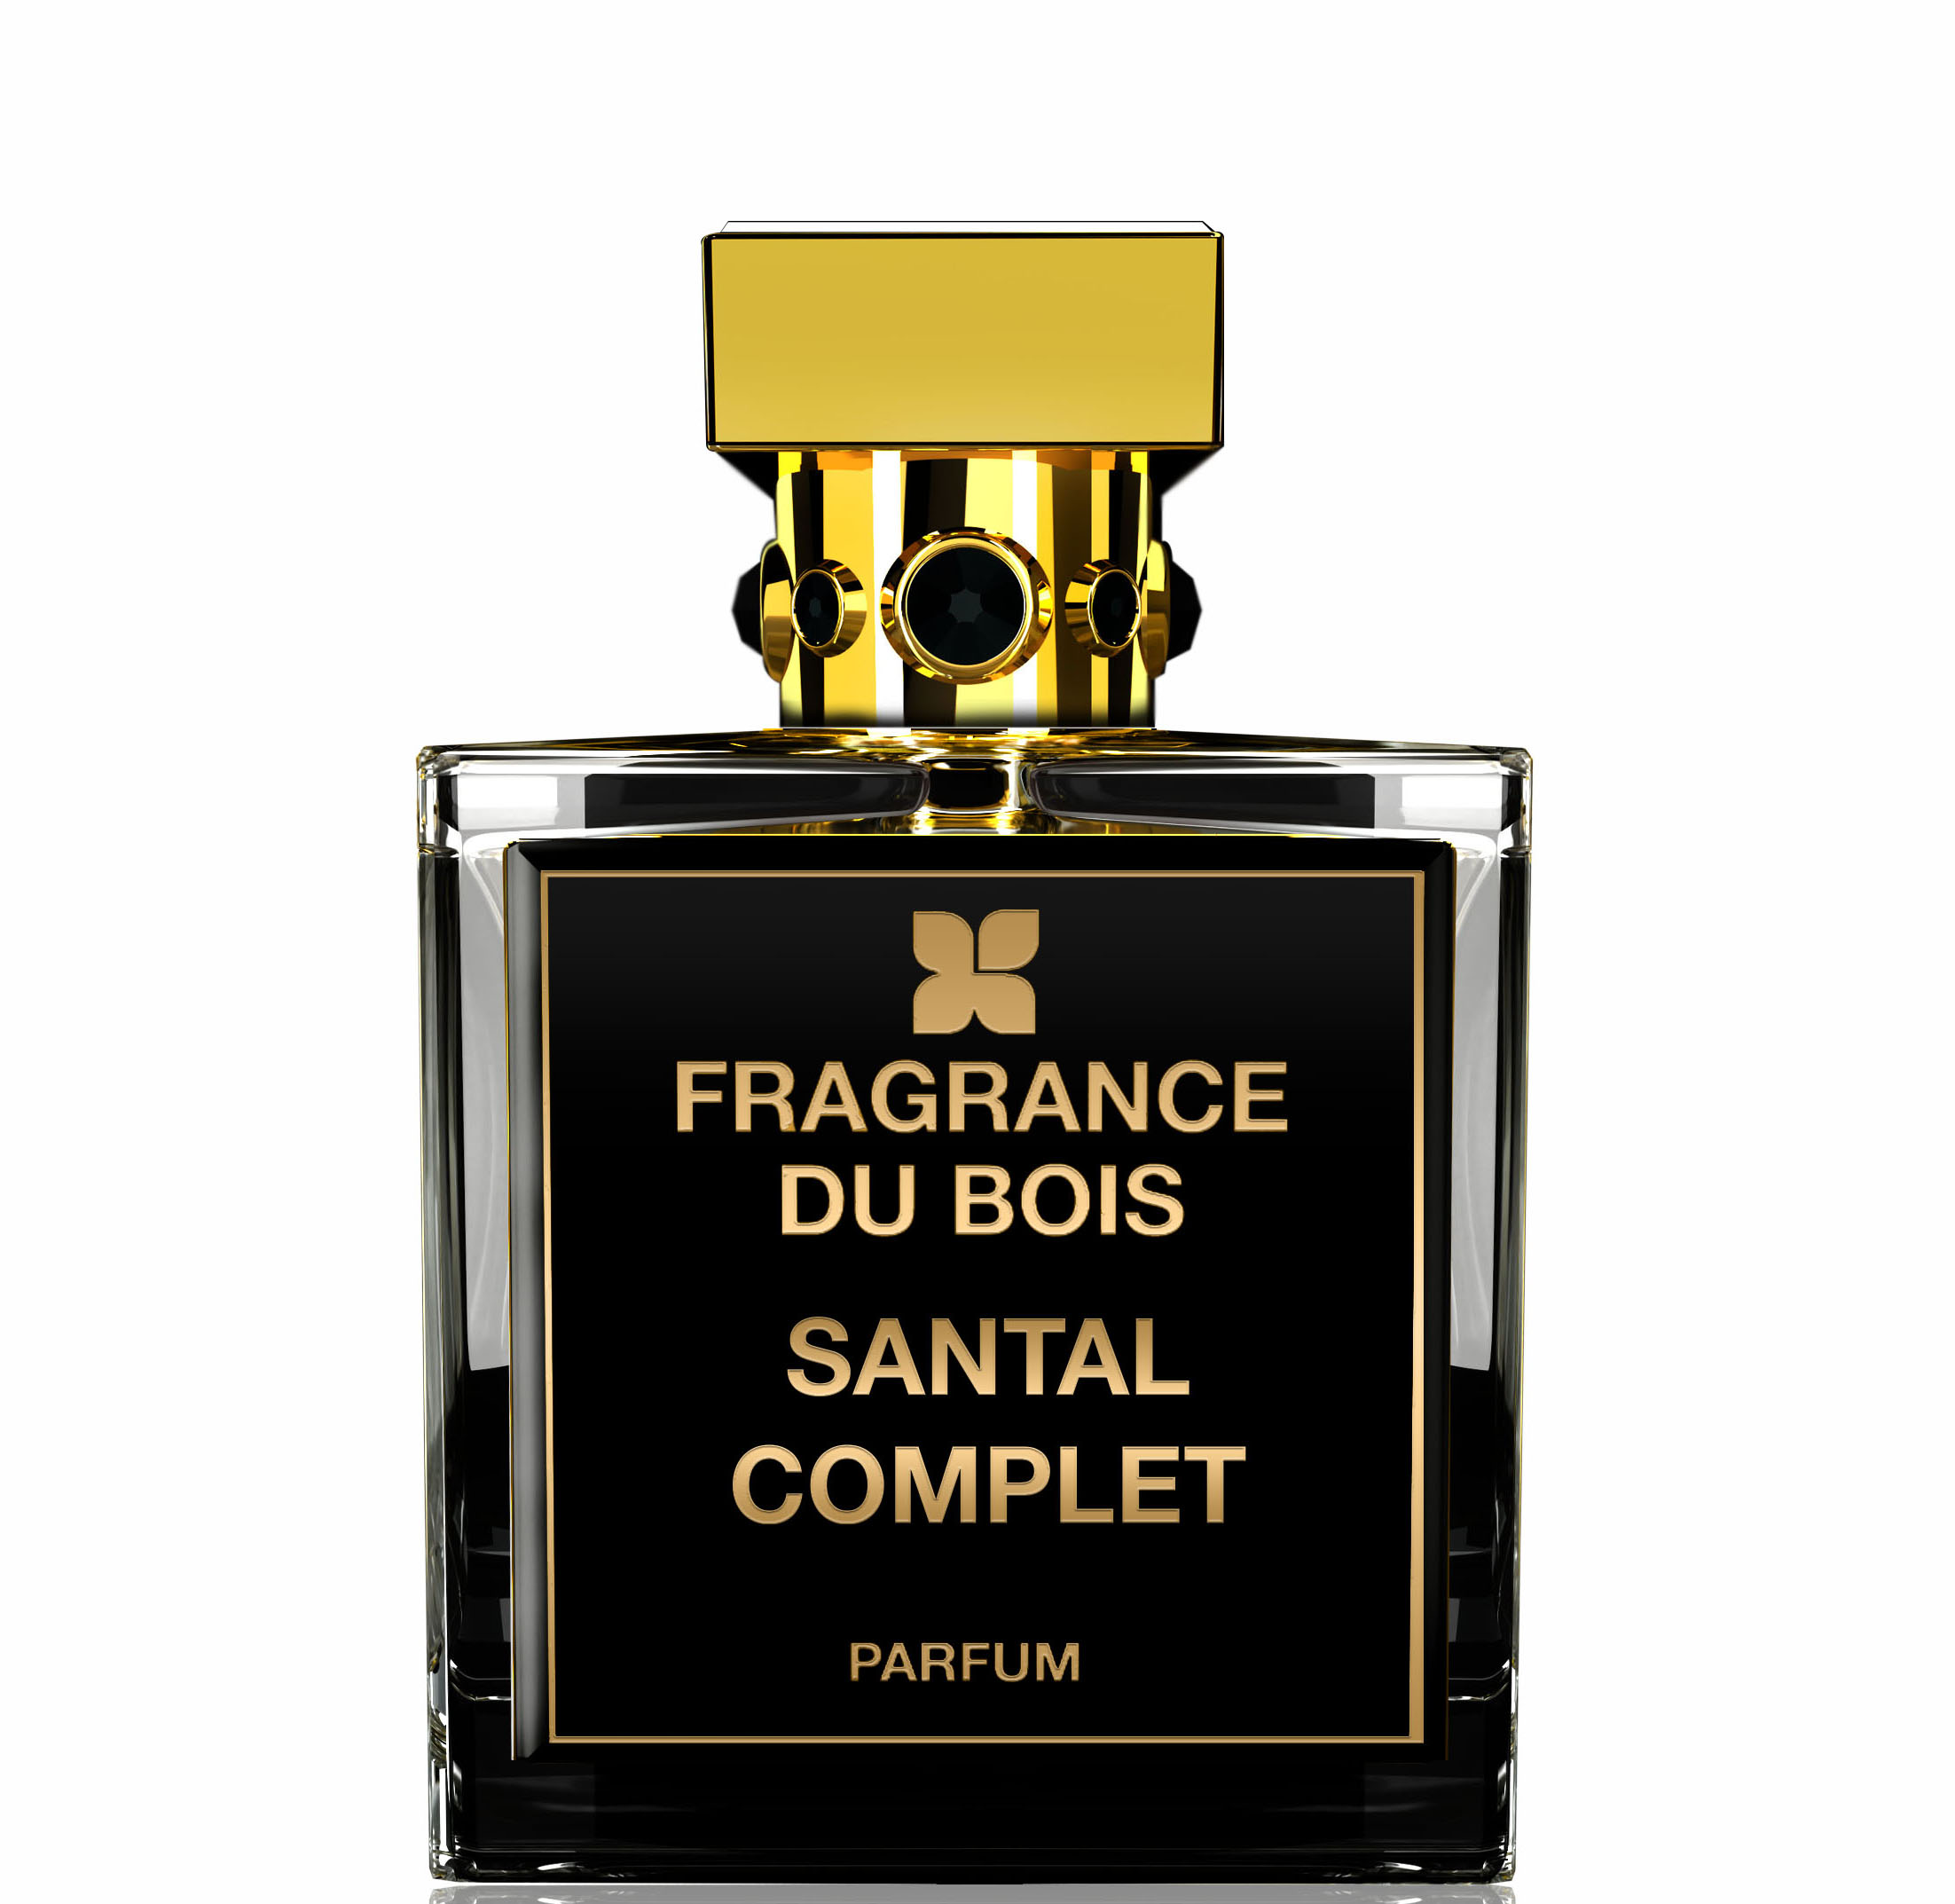 Santal Complet Fragrance Du Bois perfume a new fragrance for women and men 2016 # Parfum Bois De Santal